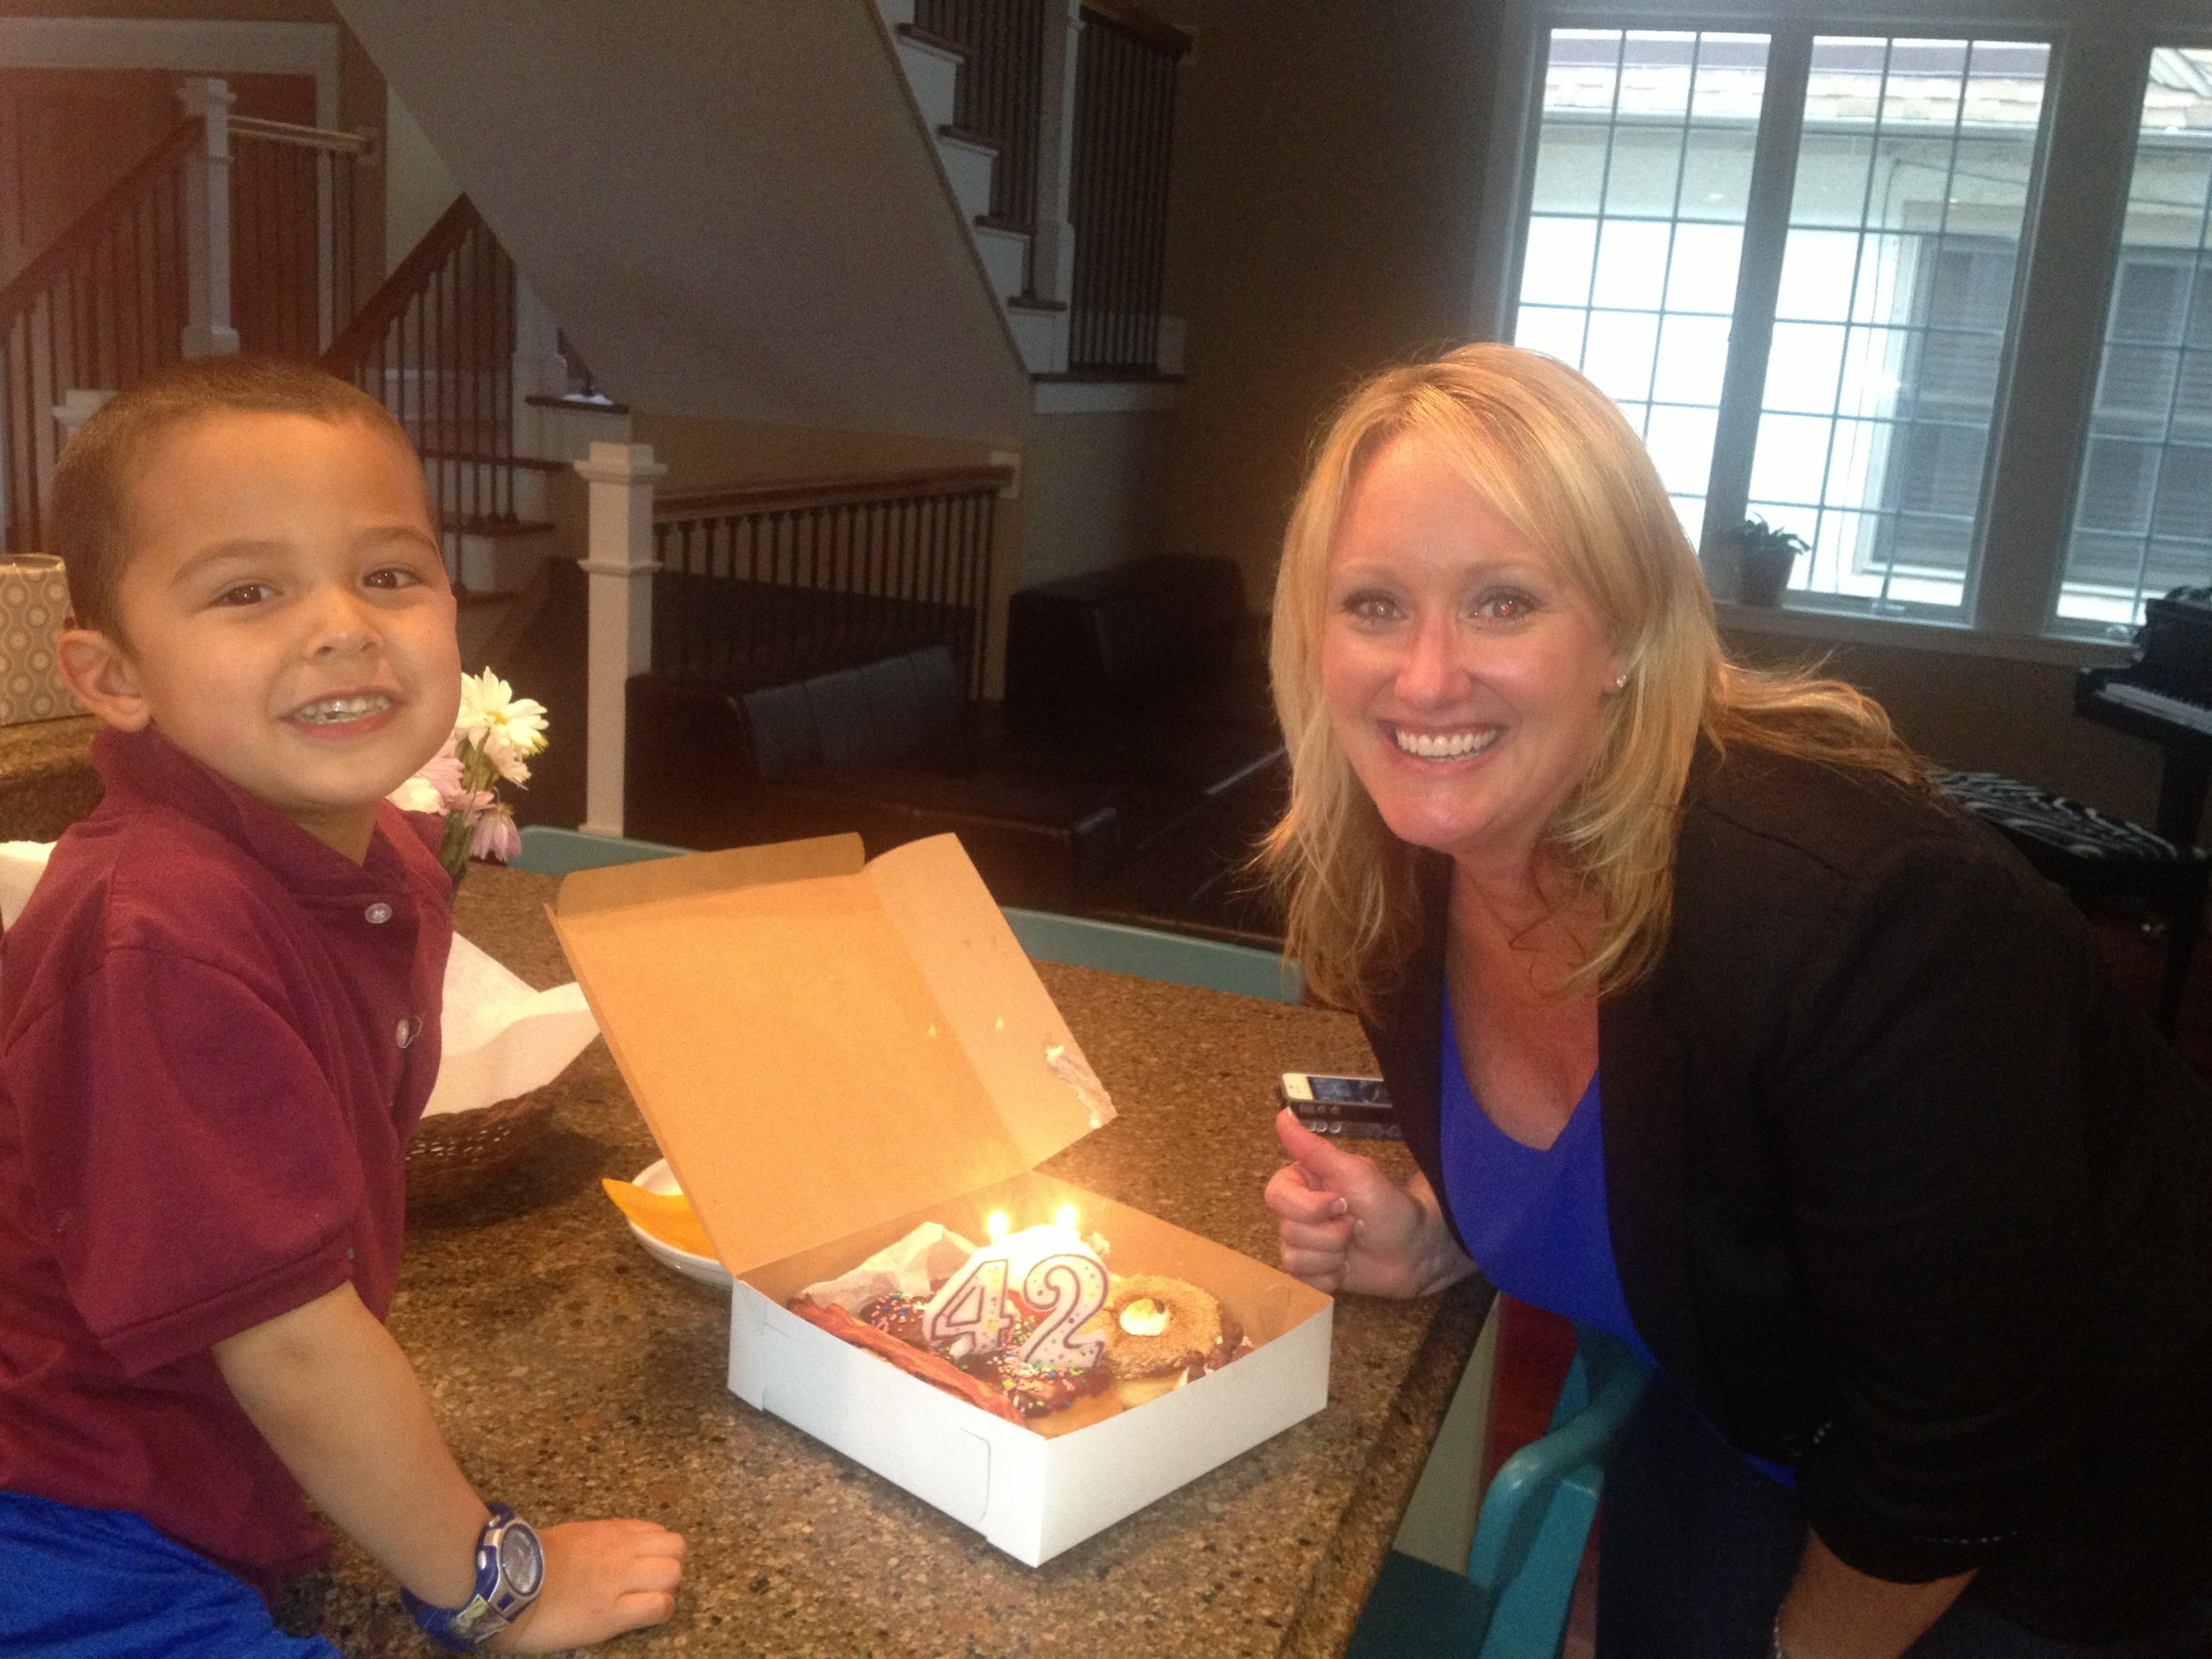 Instagram Message: Donut Day is this Friday, June 2nd. And today is this girl's bday. Donut miss out, read the blog!